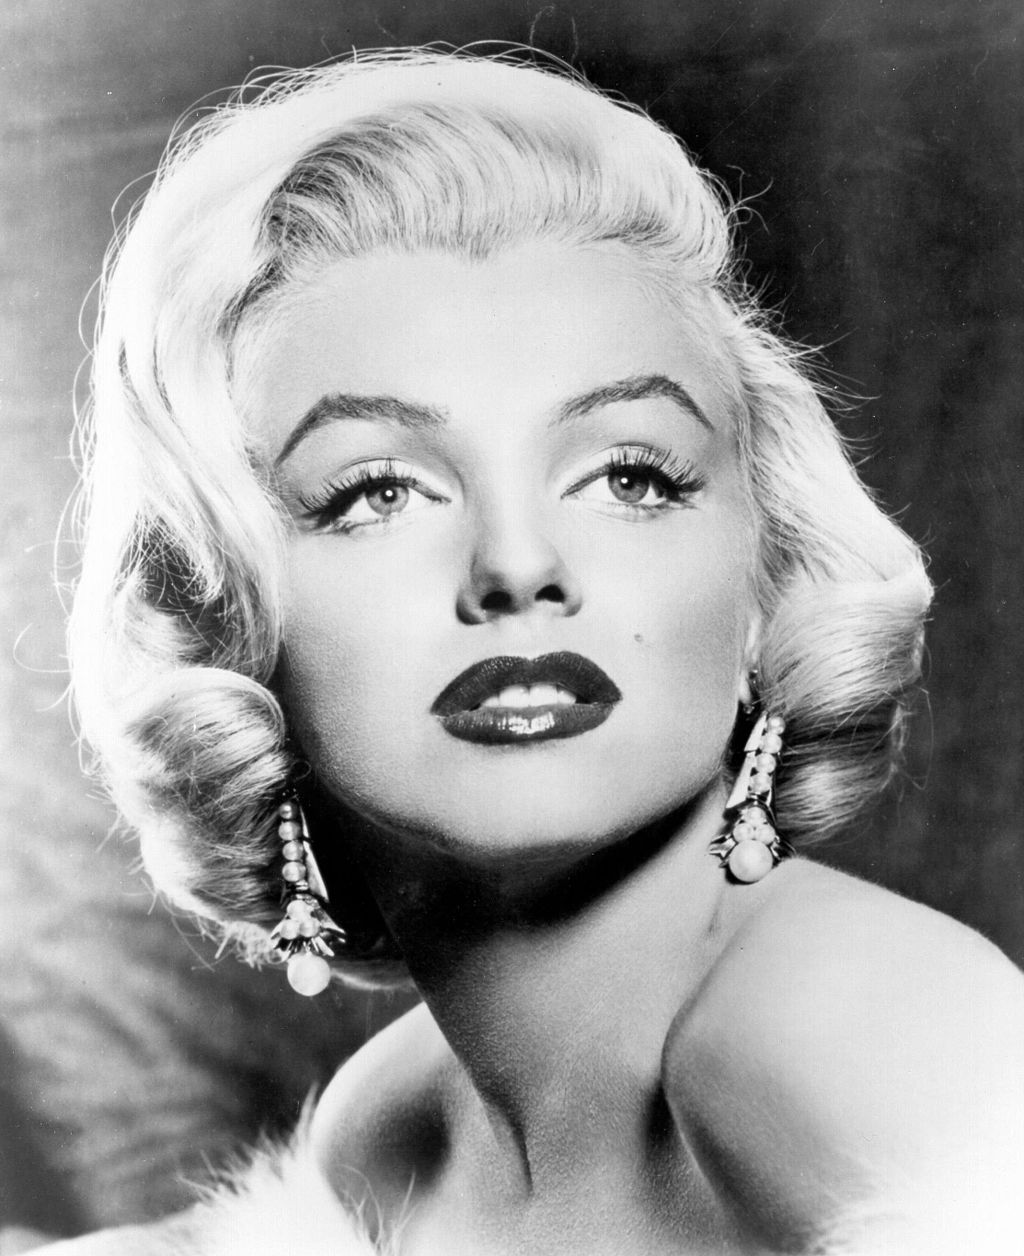 Legendarna hollywoodska diva Marilyn Monroe.